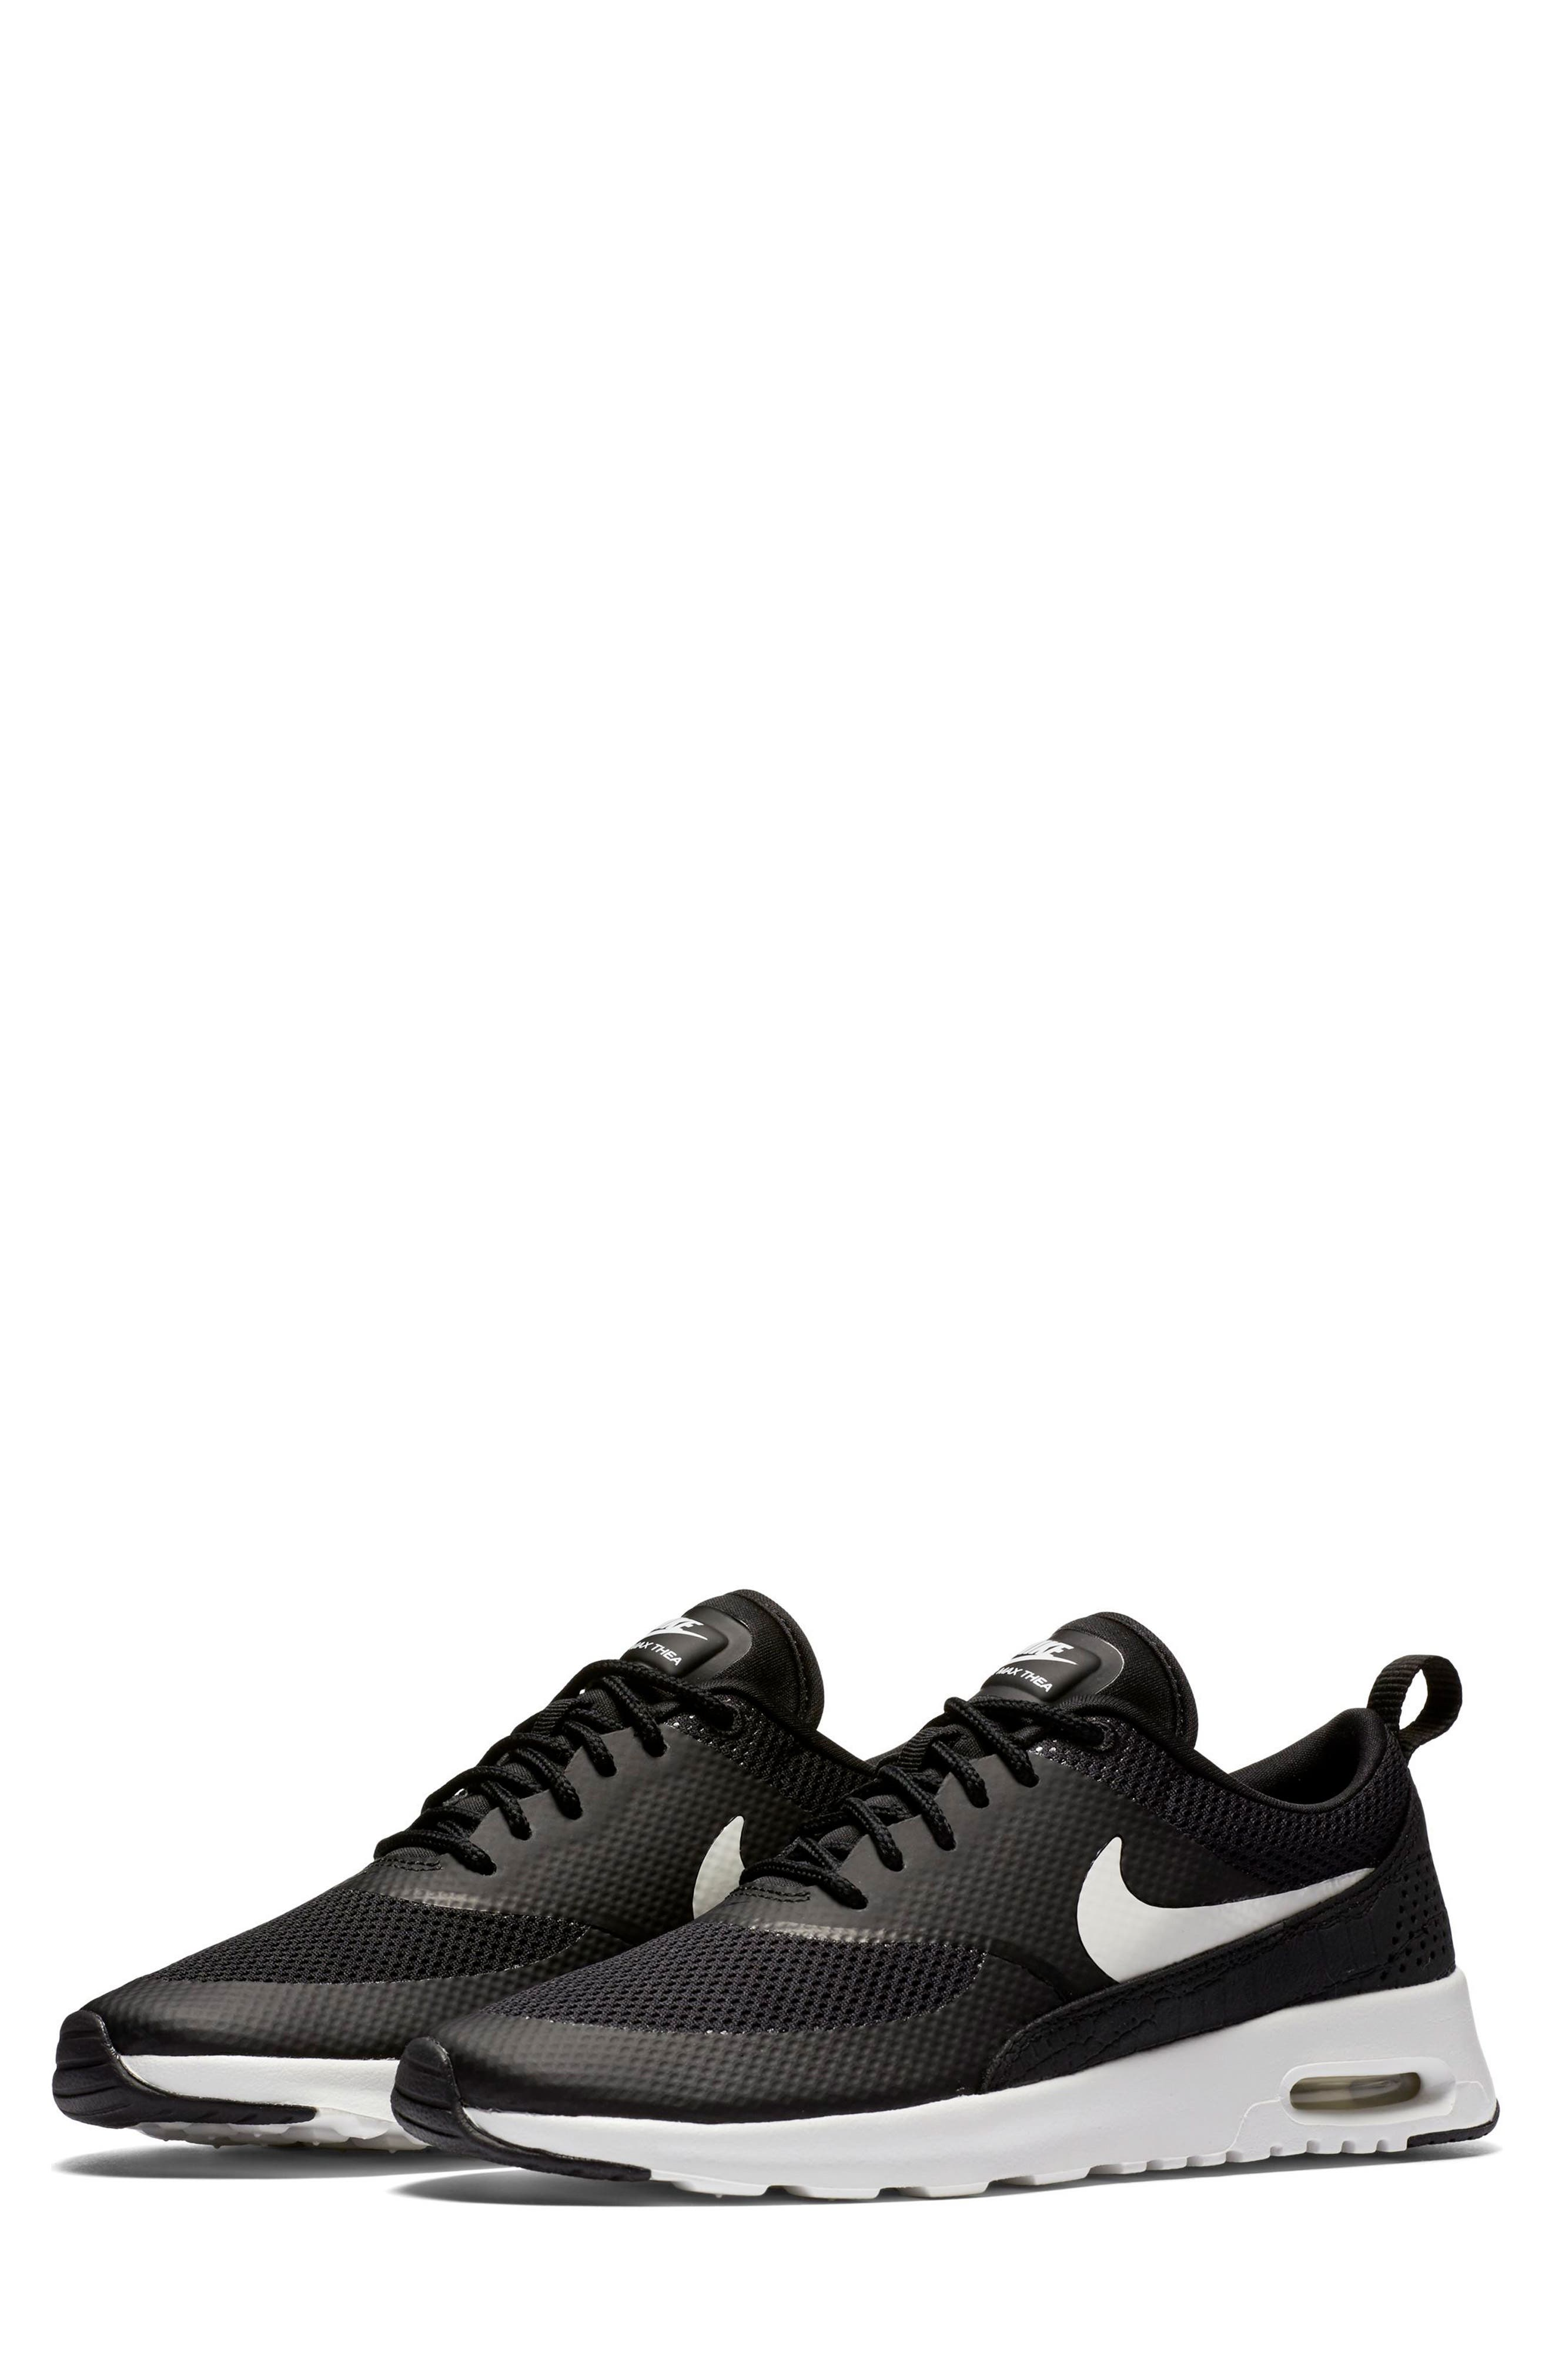 Air Max Thea Sneaker,                         Main,                         color, Black/ Summit White